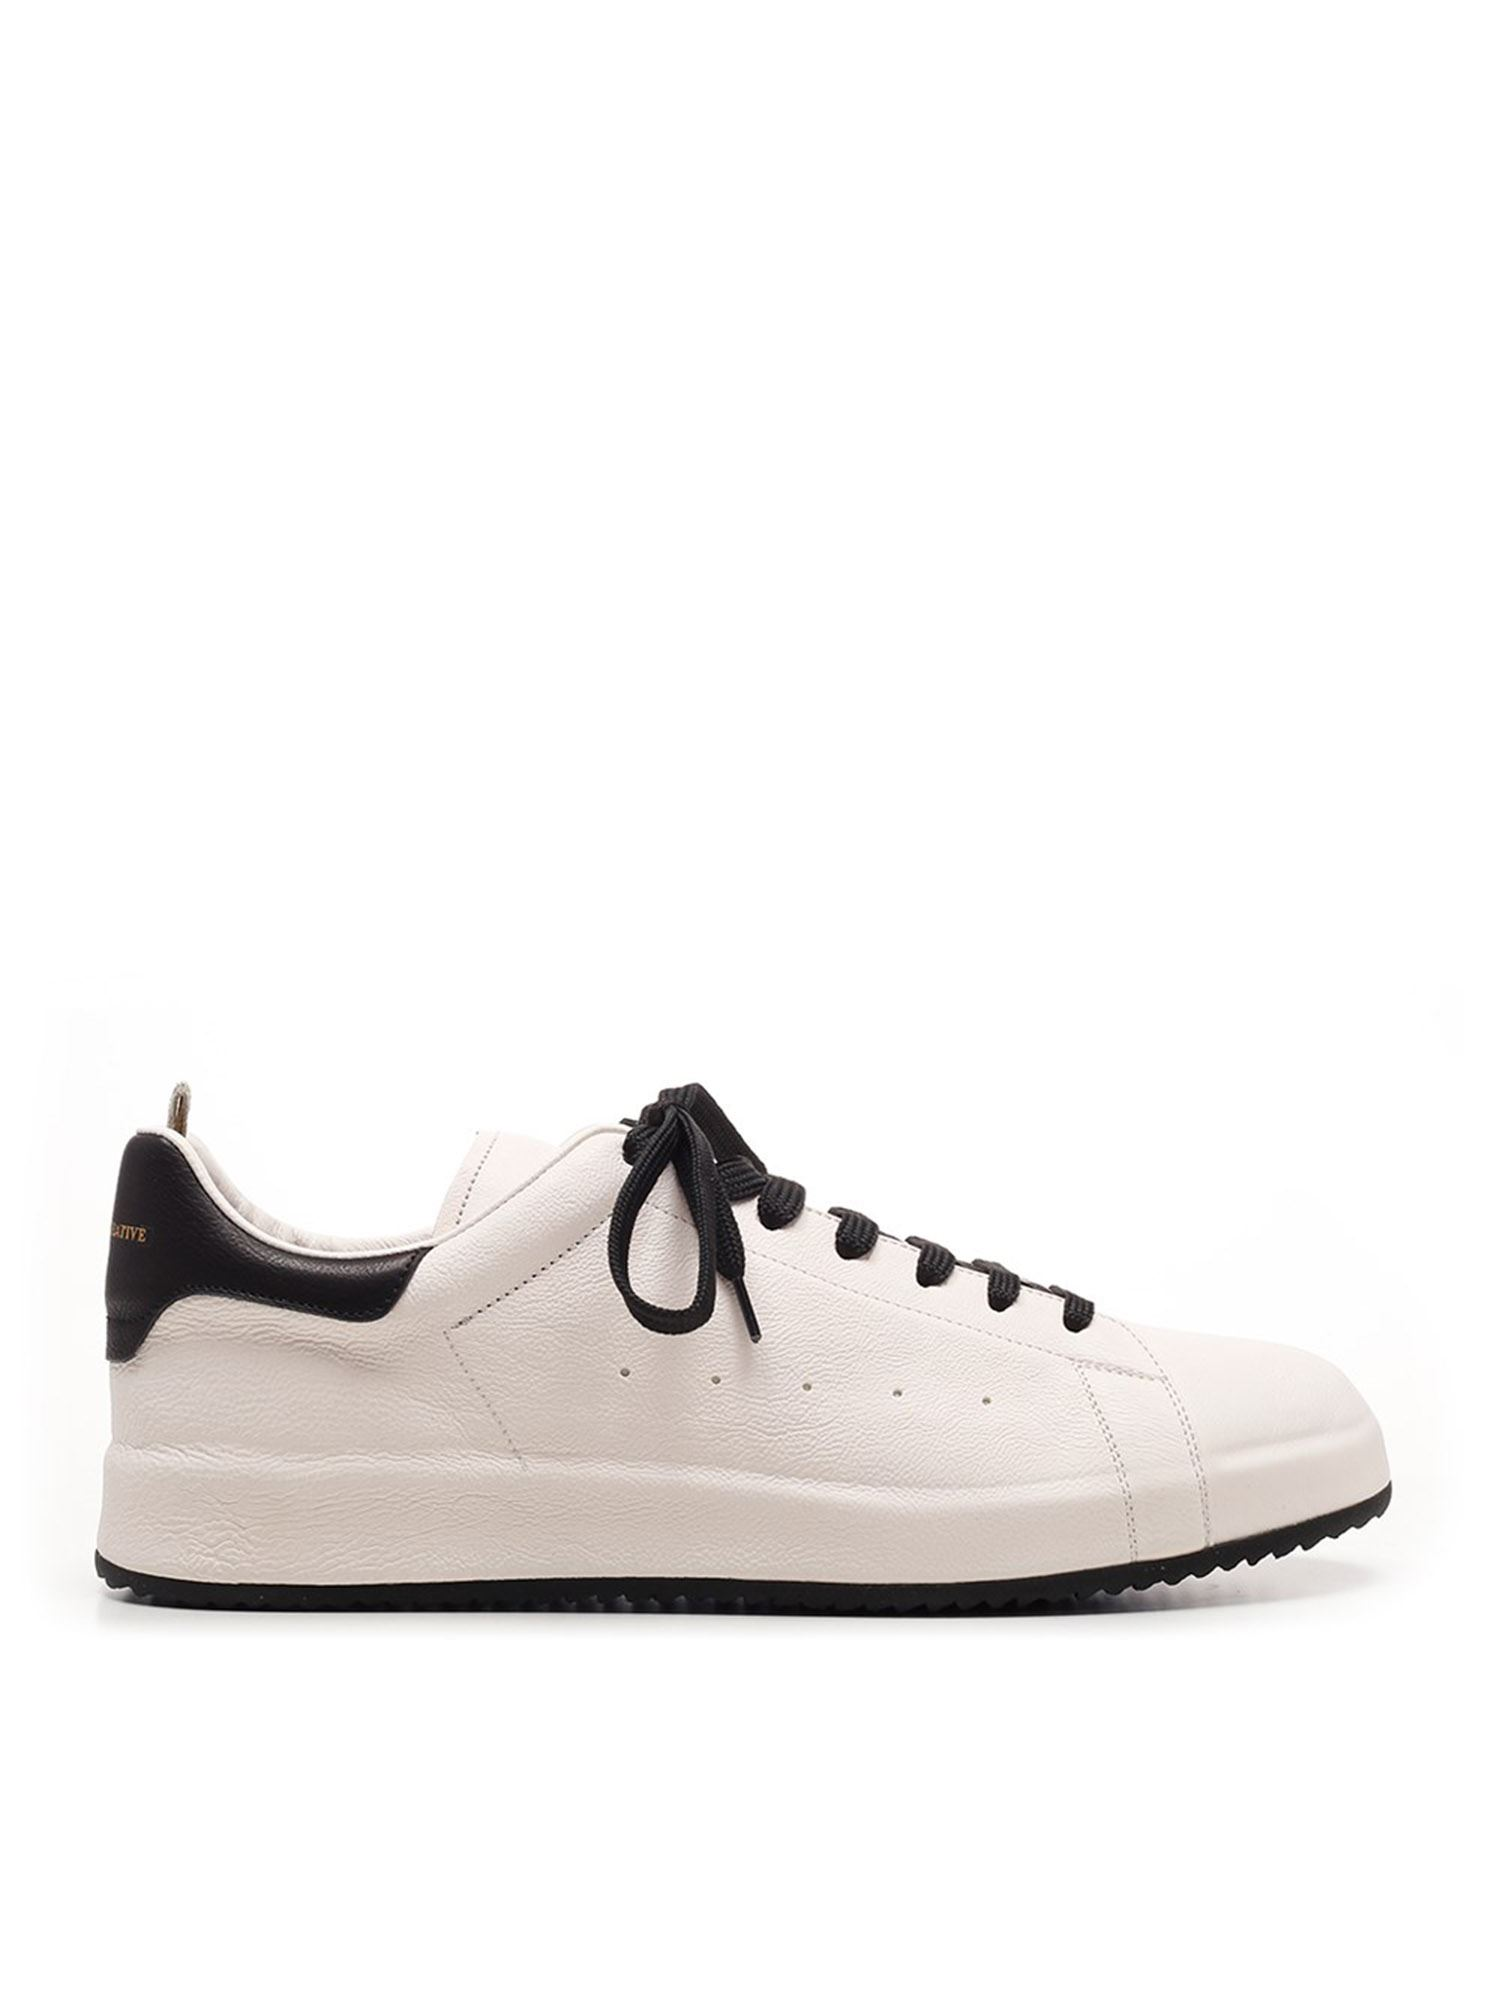 Officine Creative Leathers ACE 1 SNEAKERS IN WHITE AND BLACK